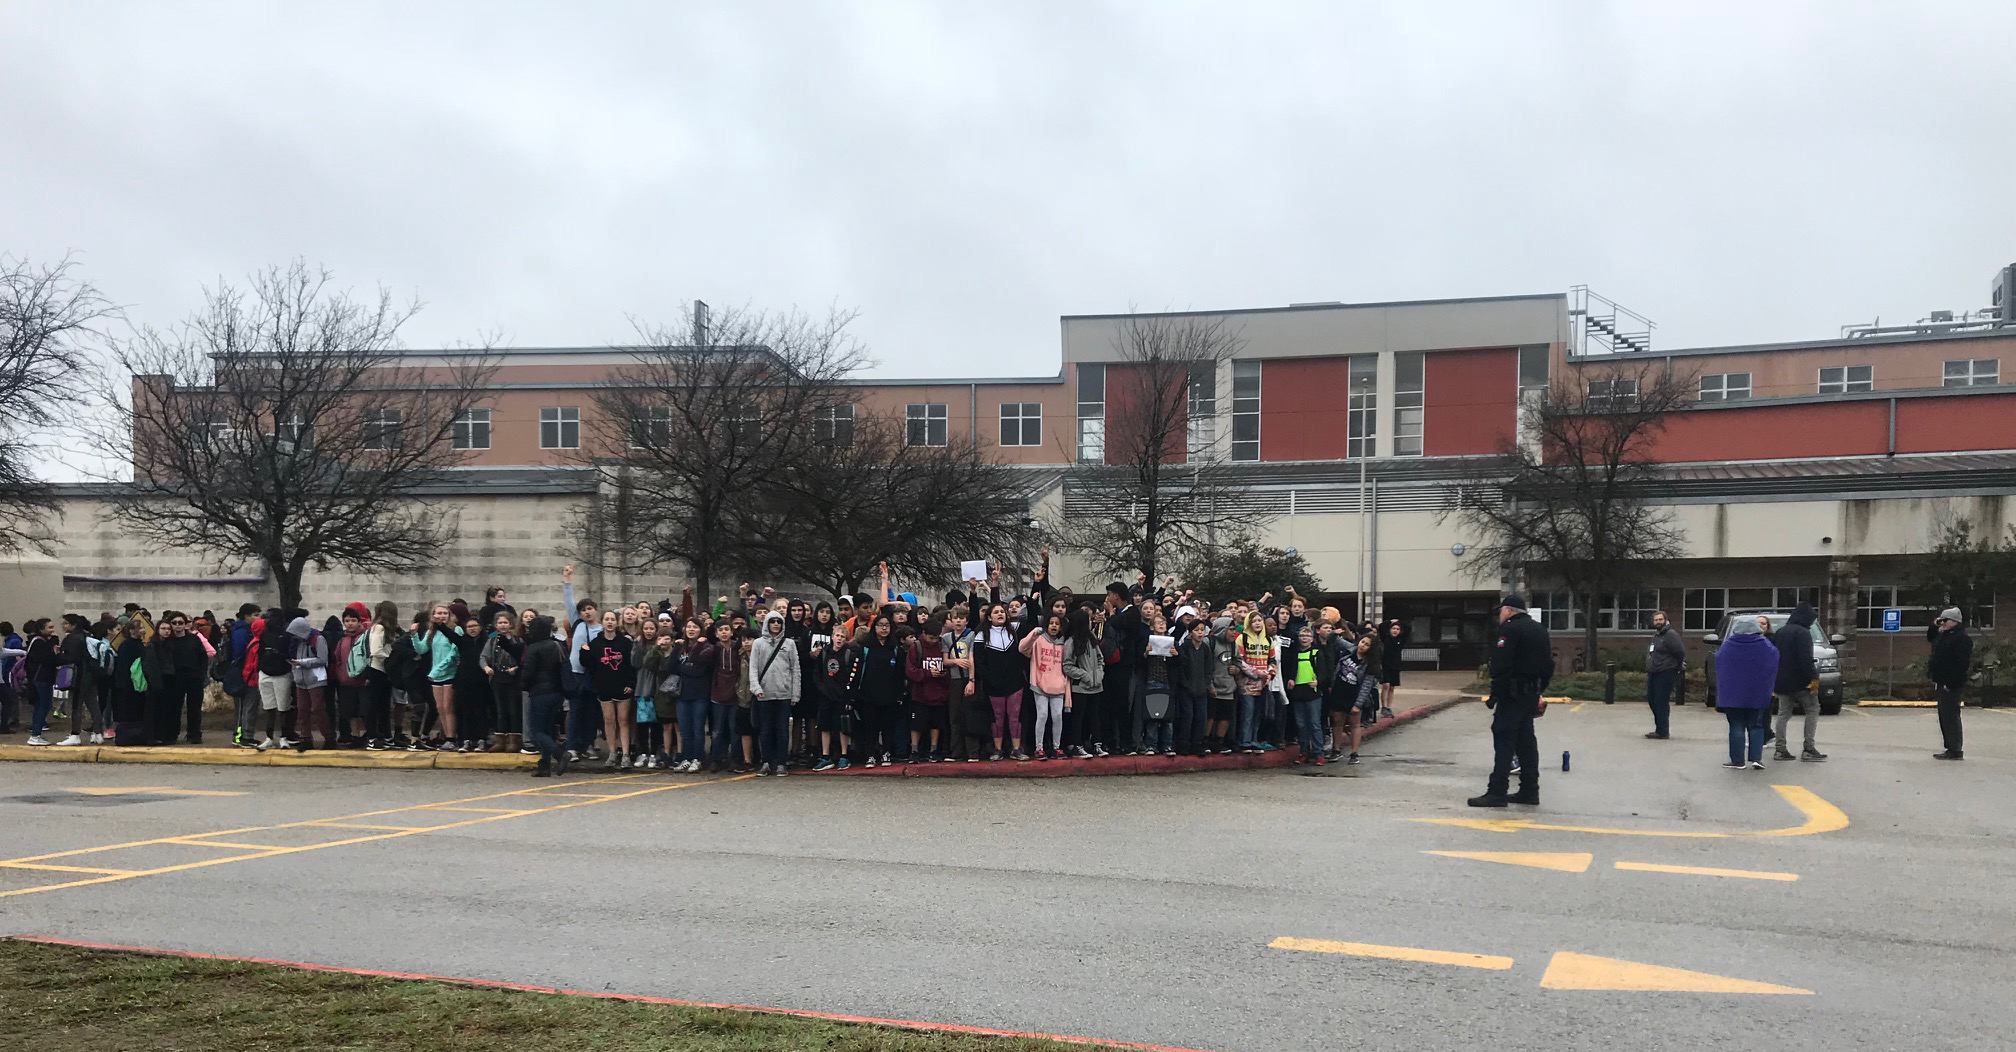 Students at Austin ISD's Clint Small Middle School protesting gun violence in schools. (KXAN Photo/Frank Martinez)